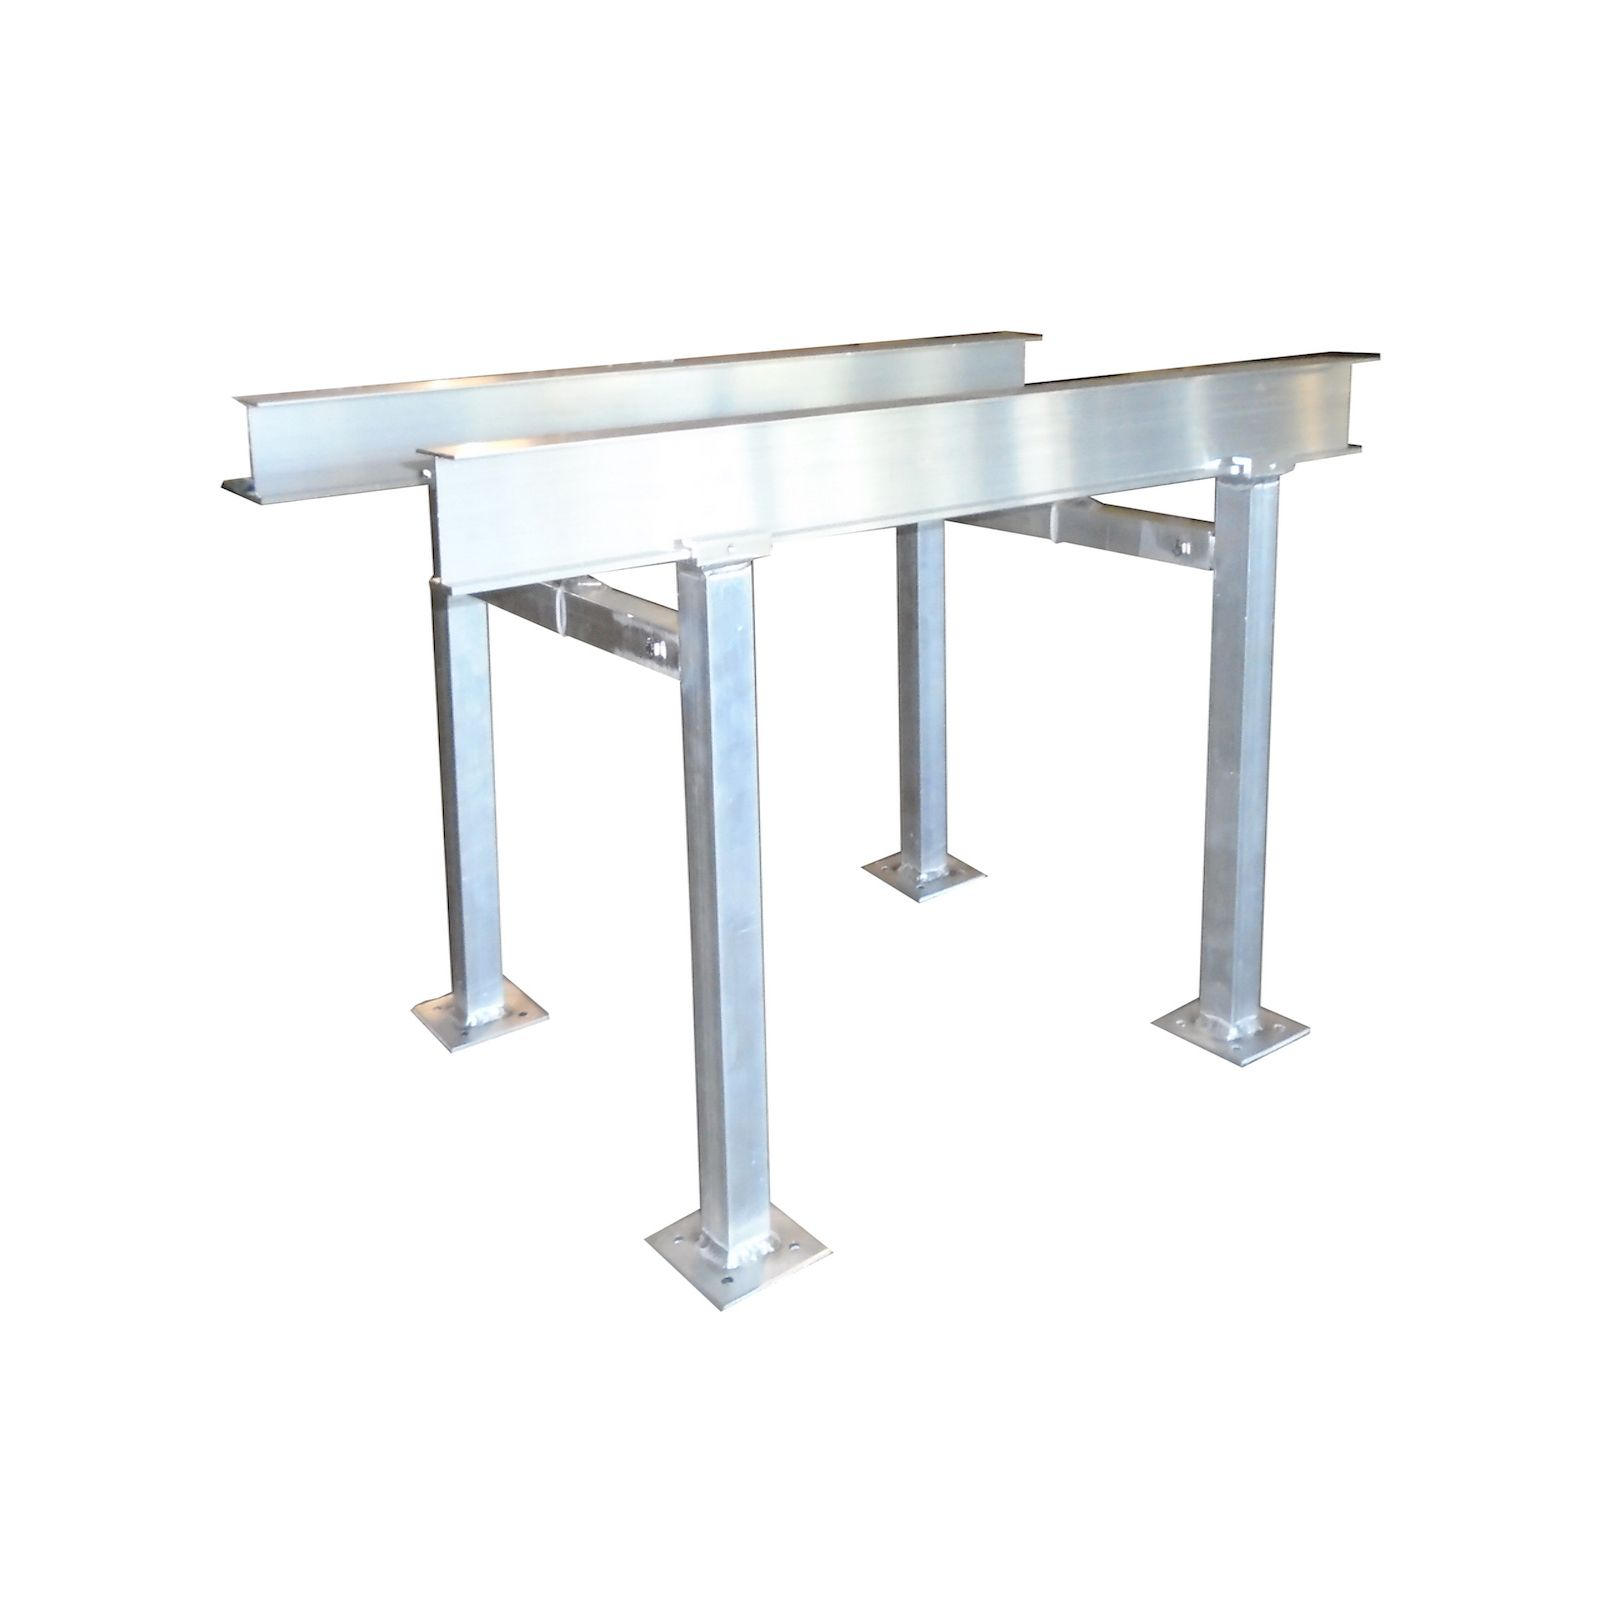 "The Metal Shop 007-633 - #633, Adjustable Aluminum Roof Stand 3' With 18"" Legs"